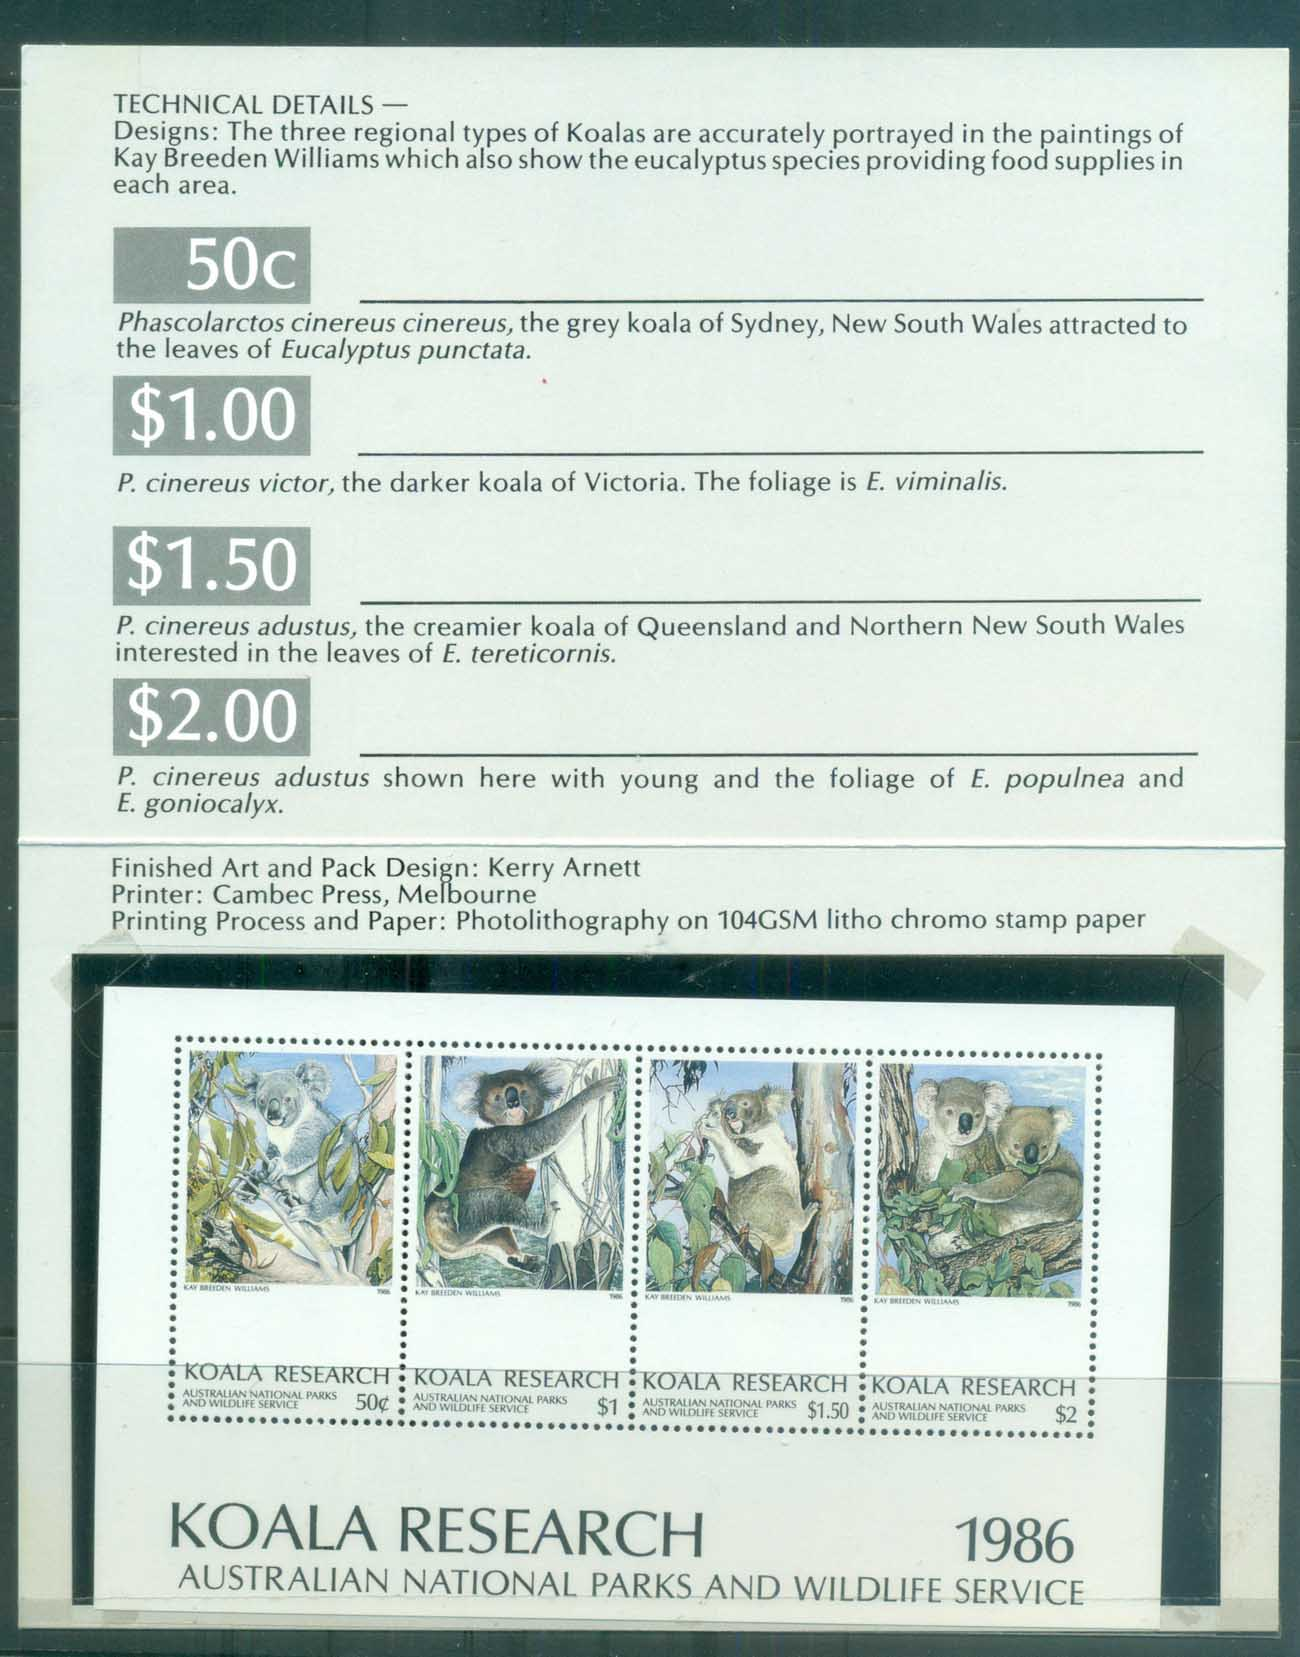 Australia 1986 Koala Research MS Pk MUH lot77127